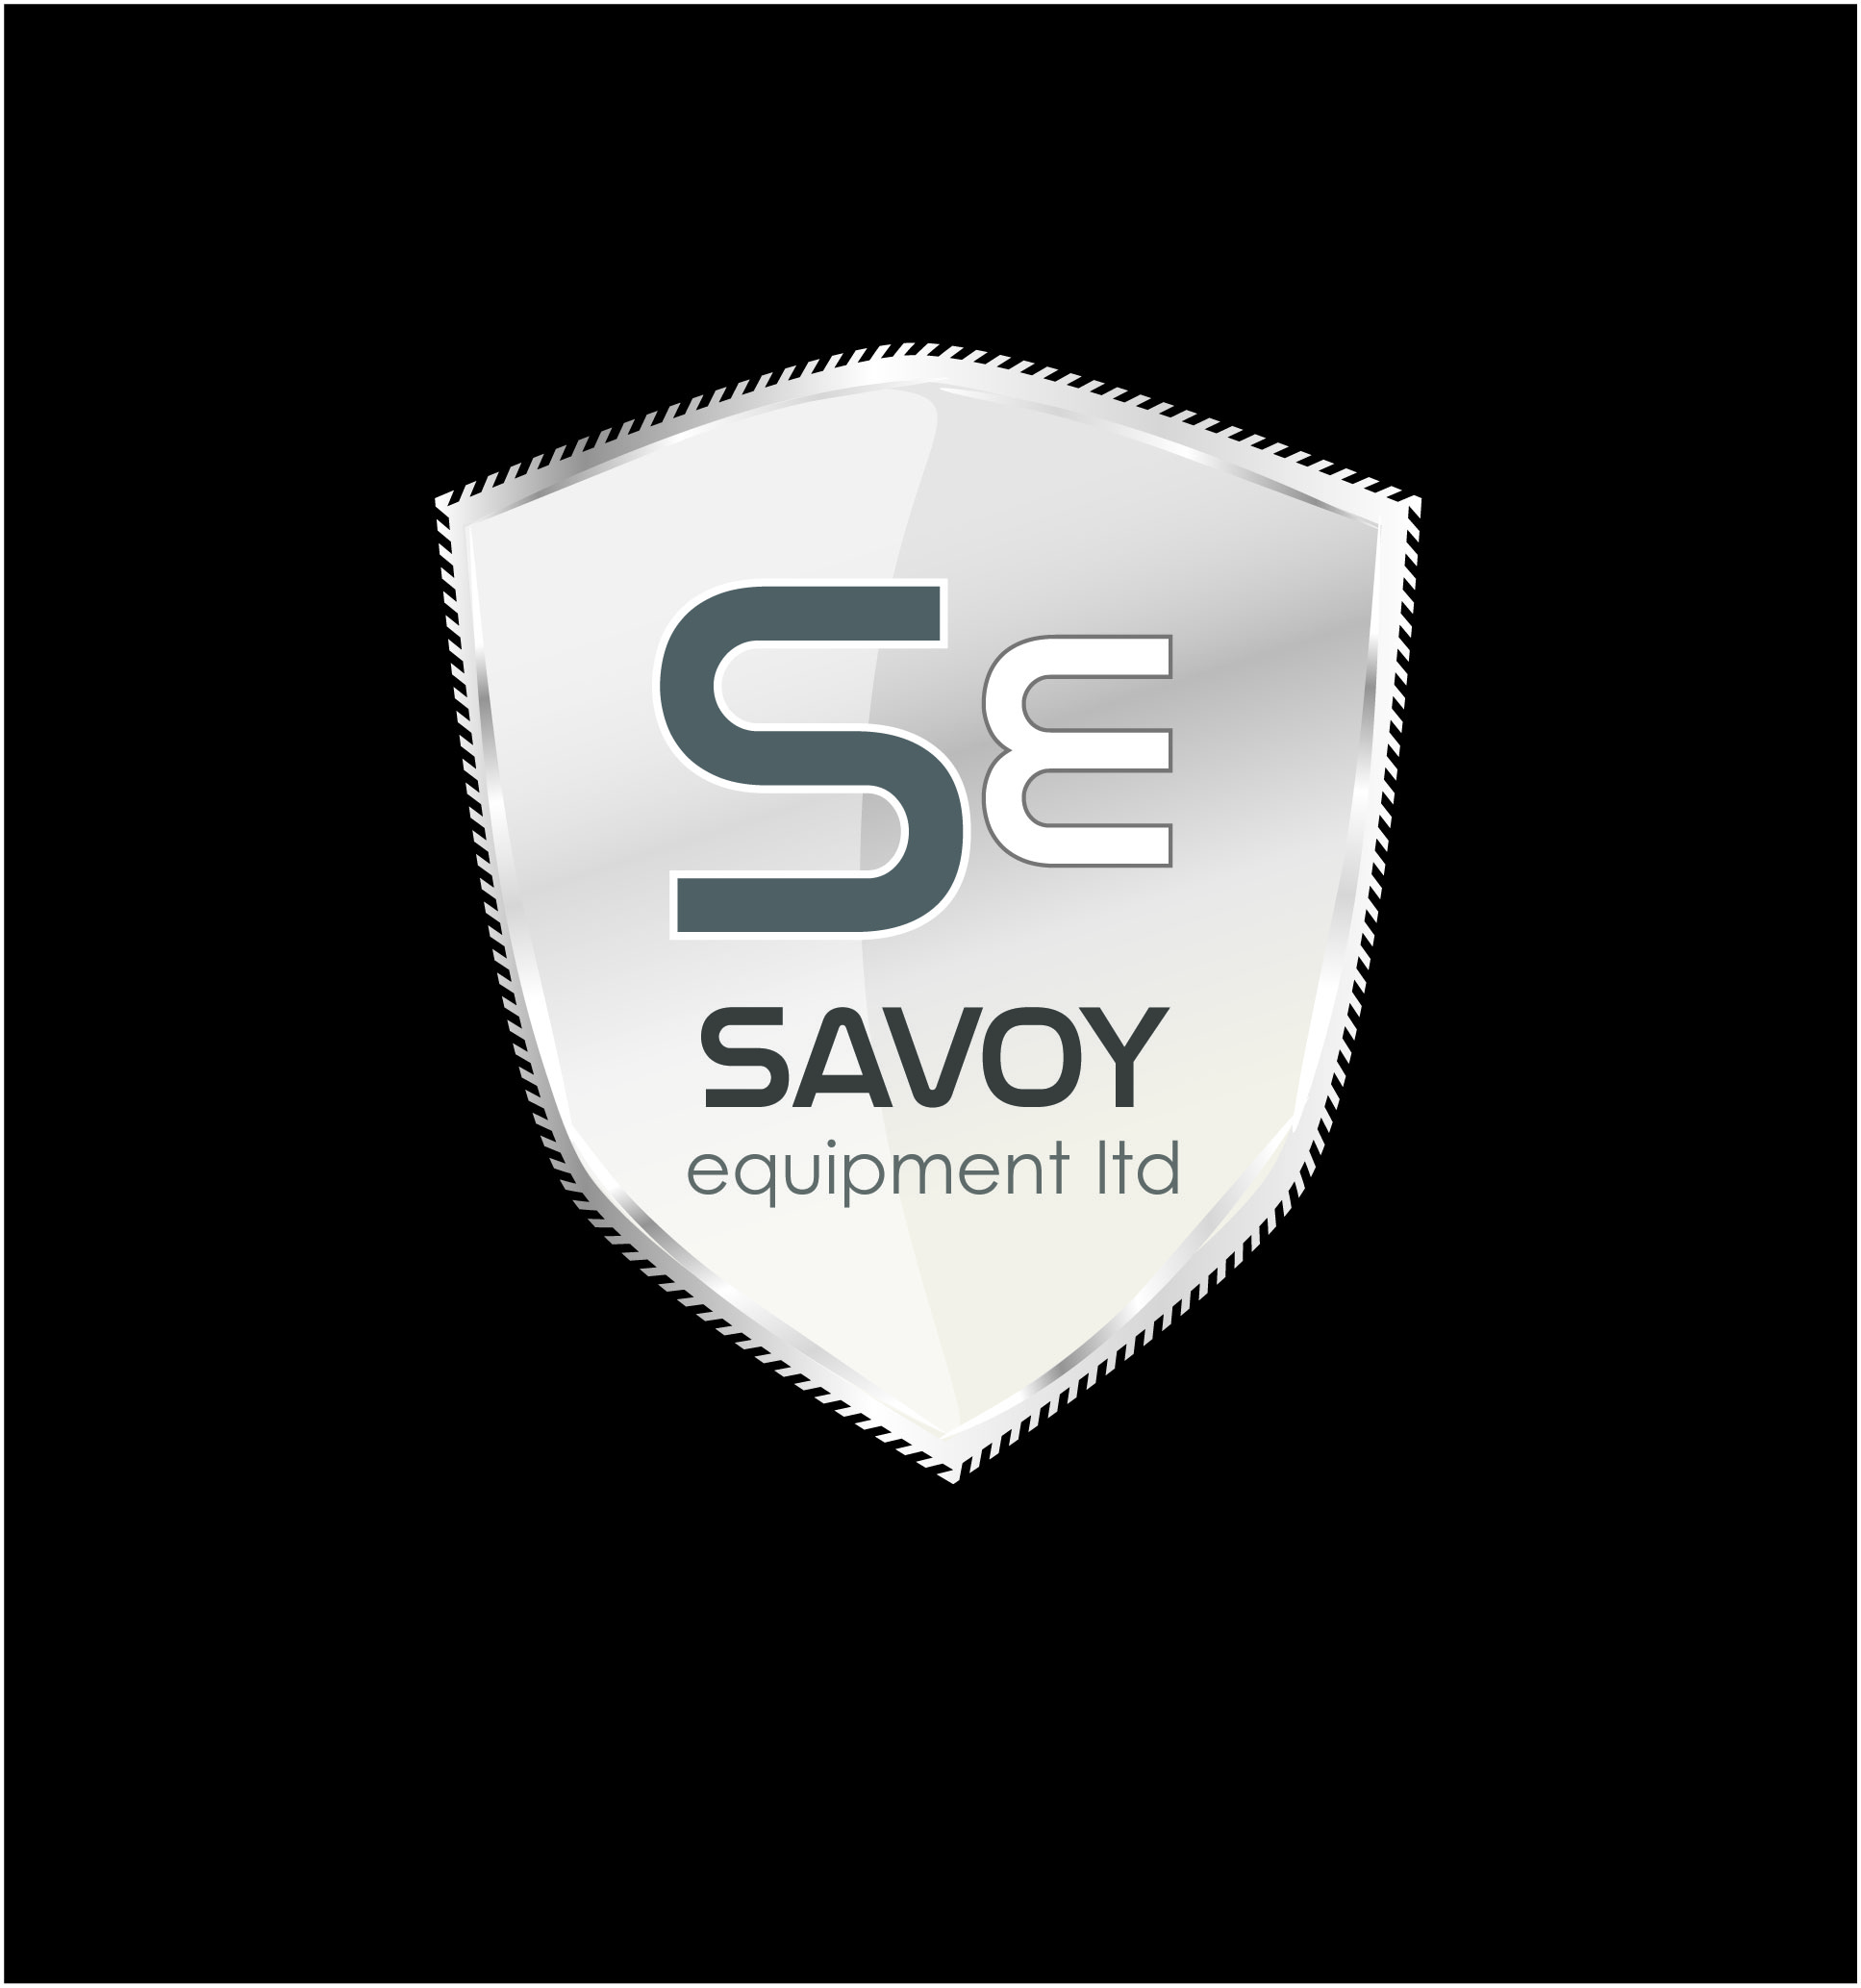 Logo Design by Vivek Singh - Entry No. 101 in the Logo Design Contest Inspiring Logo Design for Savoy Equipment Ltd..